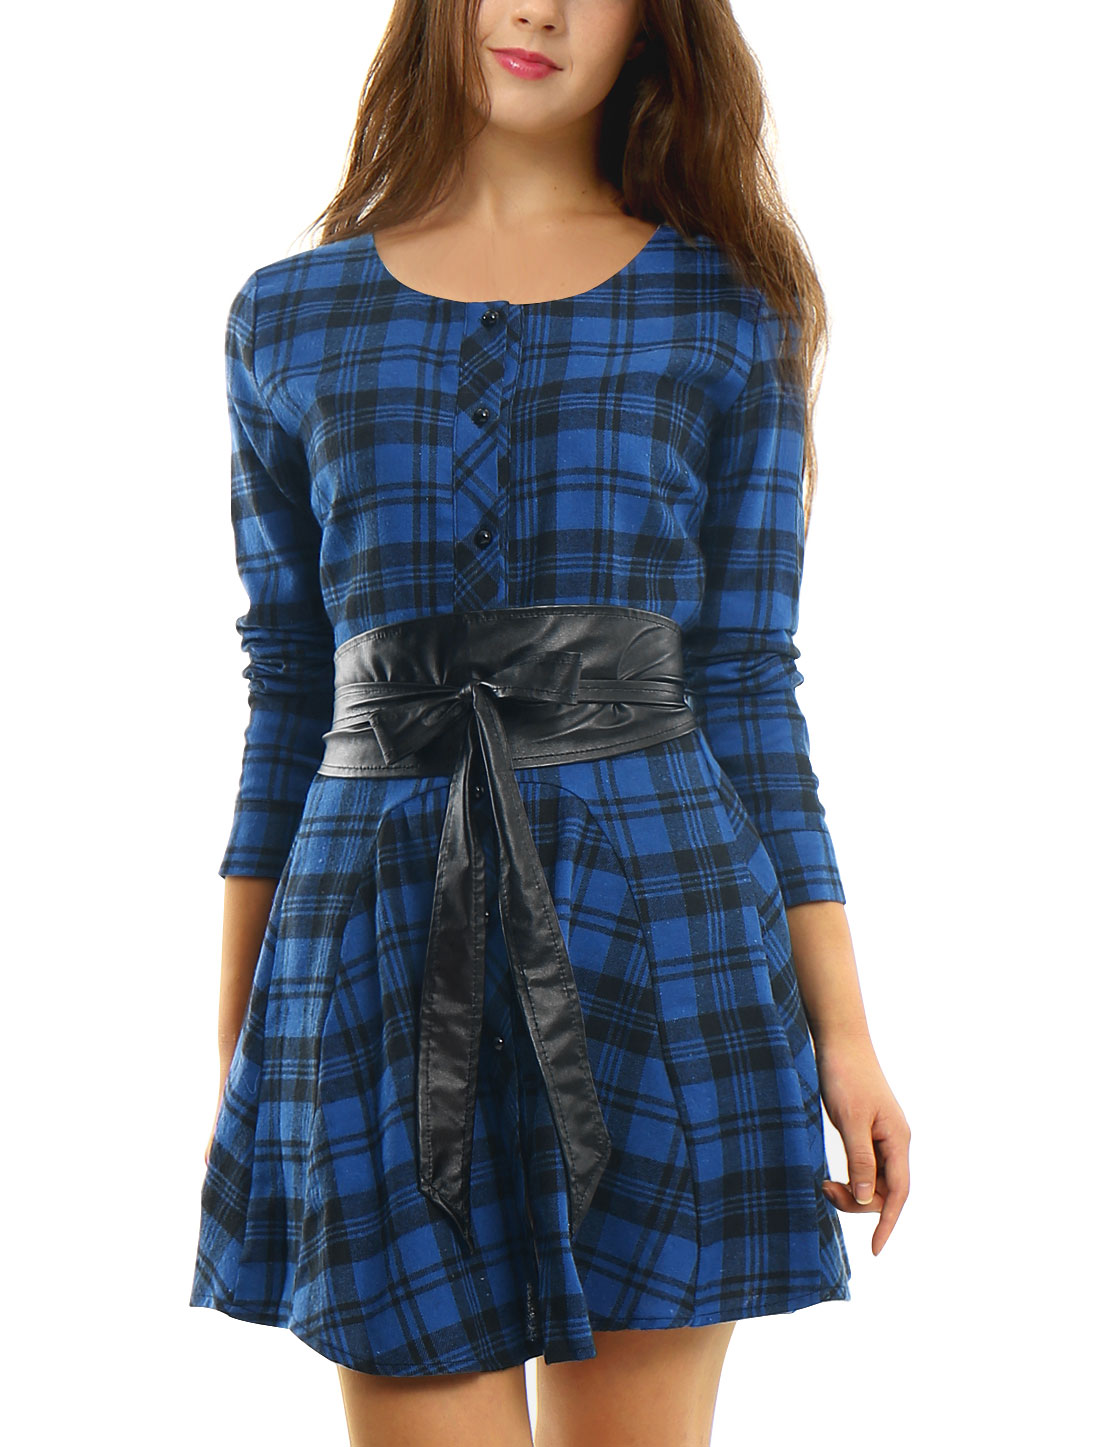 Allegra K Women Plaids Long Sleeves Belted A Line Shirt Dress Dark Blue Black S